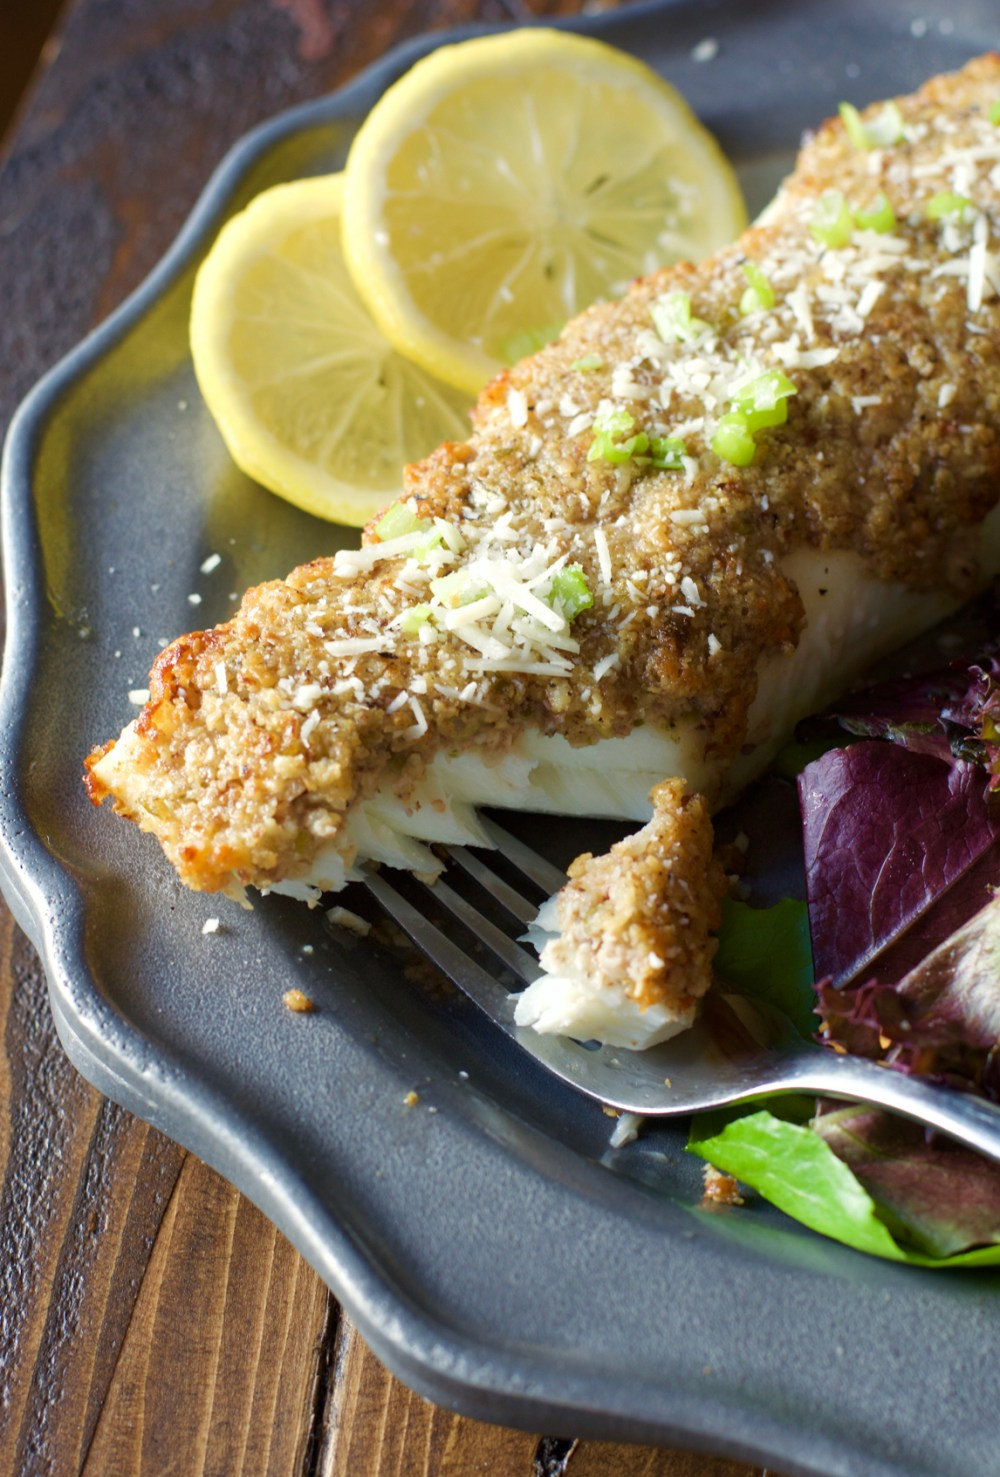 Try this Baked Parmesan and Pecan Crusted Halibut for a heart healthy dinner ready in just 20 minutes!